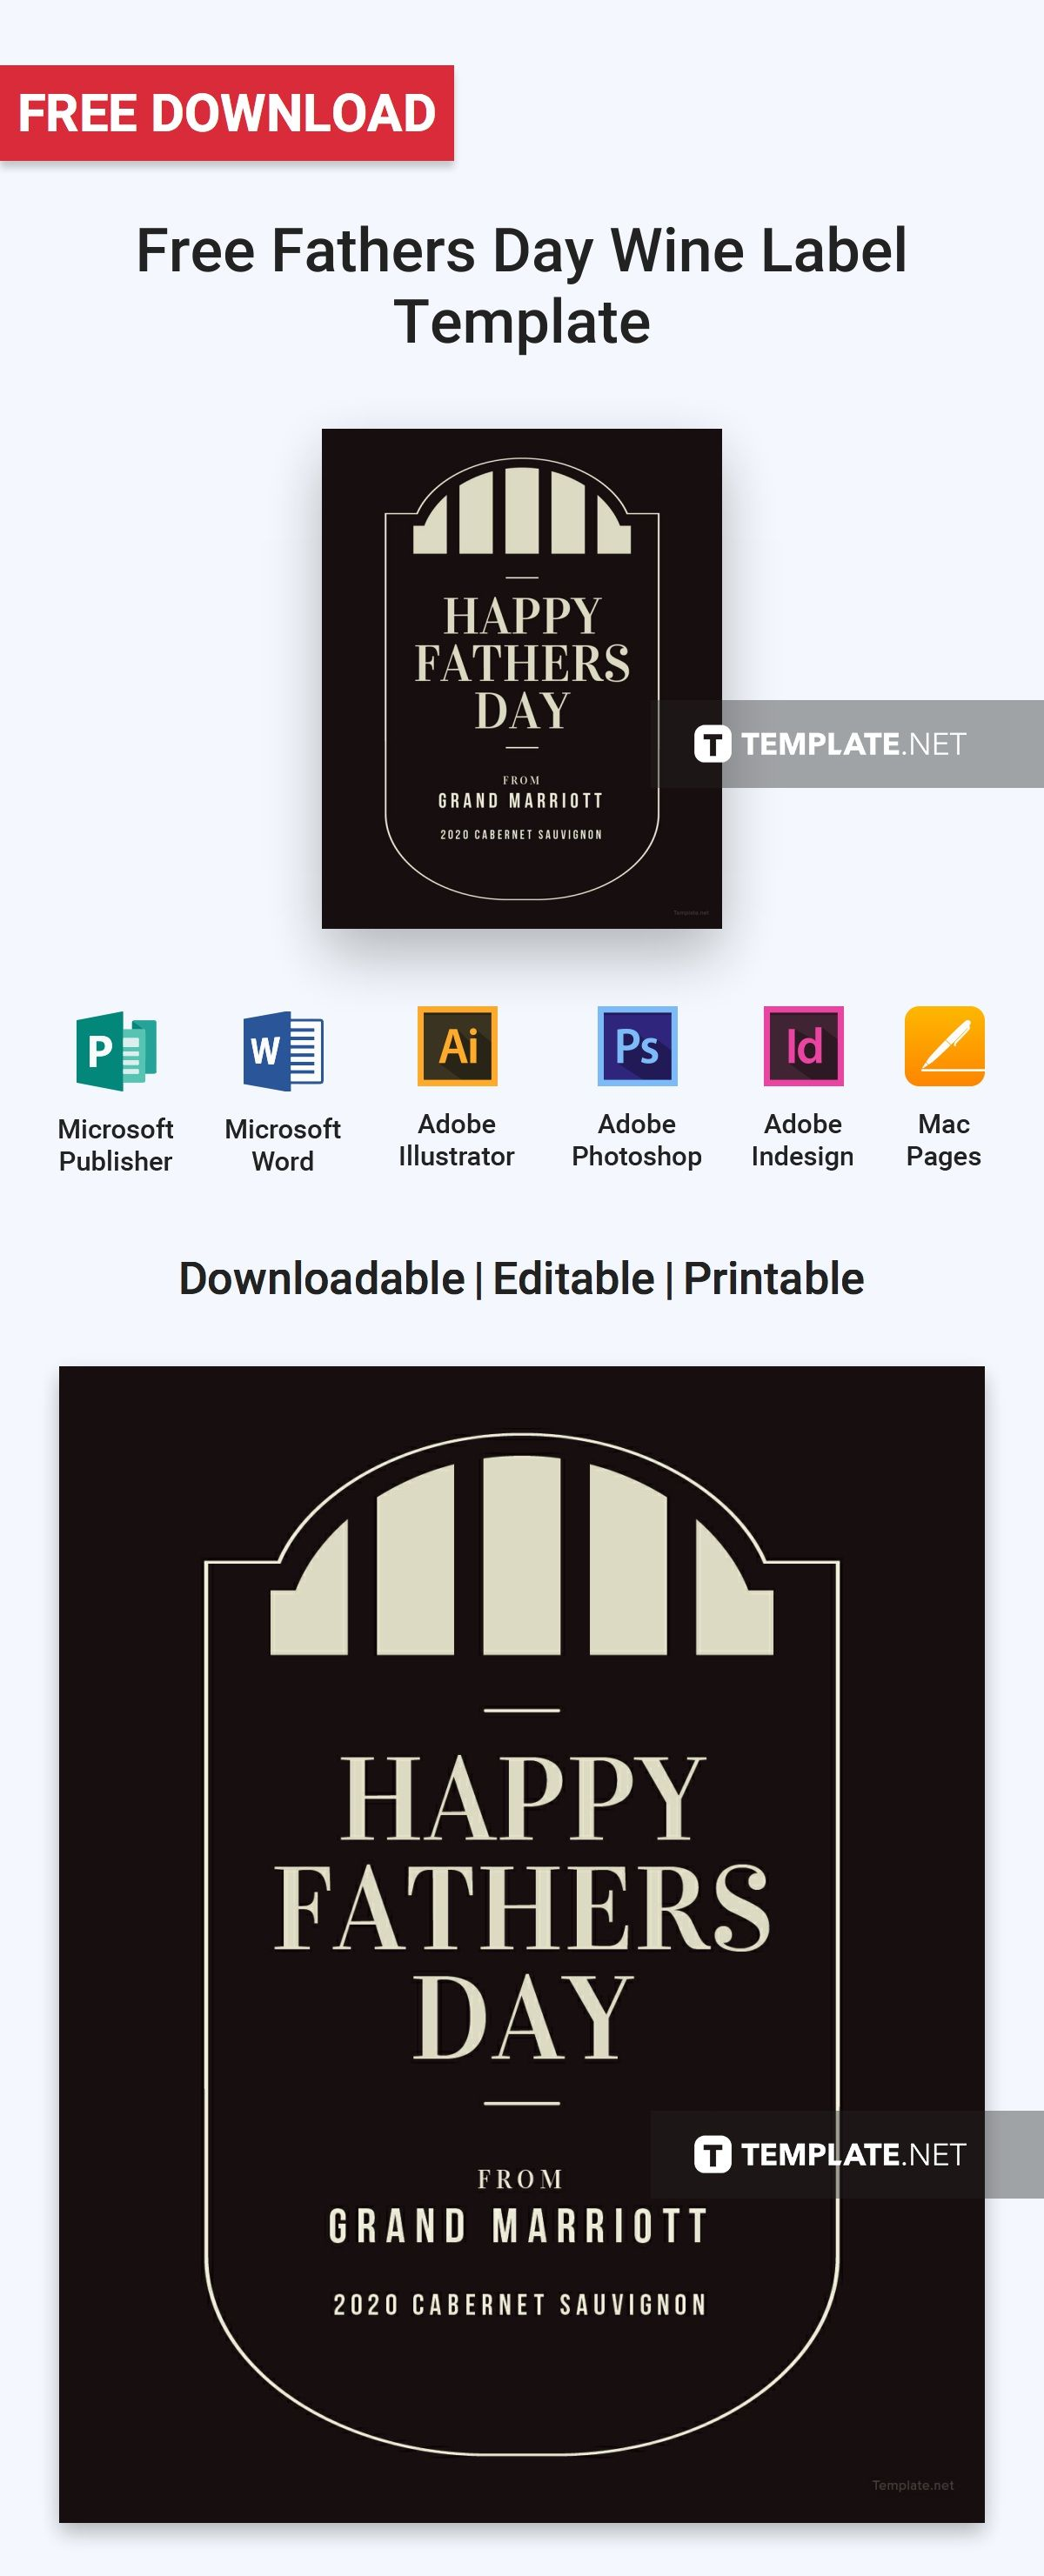 Free fathers day wine label free label templates pinterest free fathers day wine label template free label templates wine label fathers dads maxwellsz